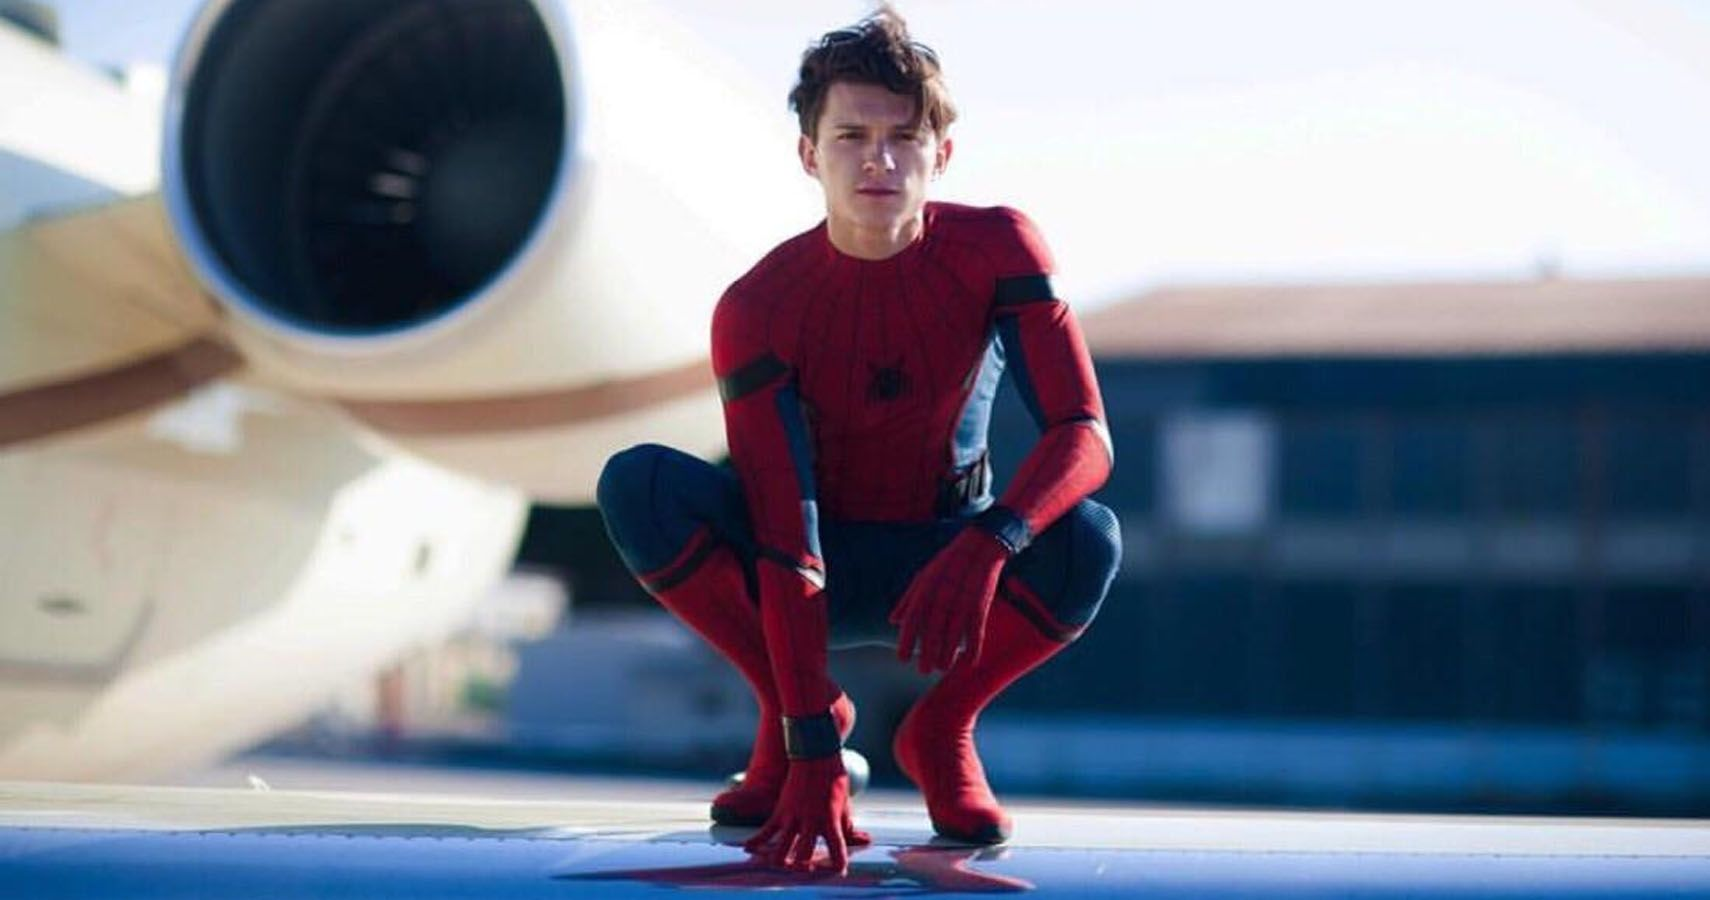 20 Things Only True Fans Know About Tom Holland's Spider-Man